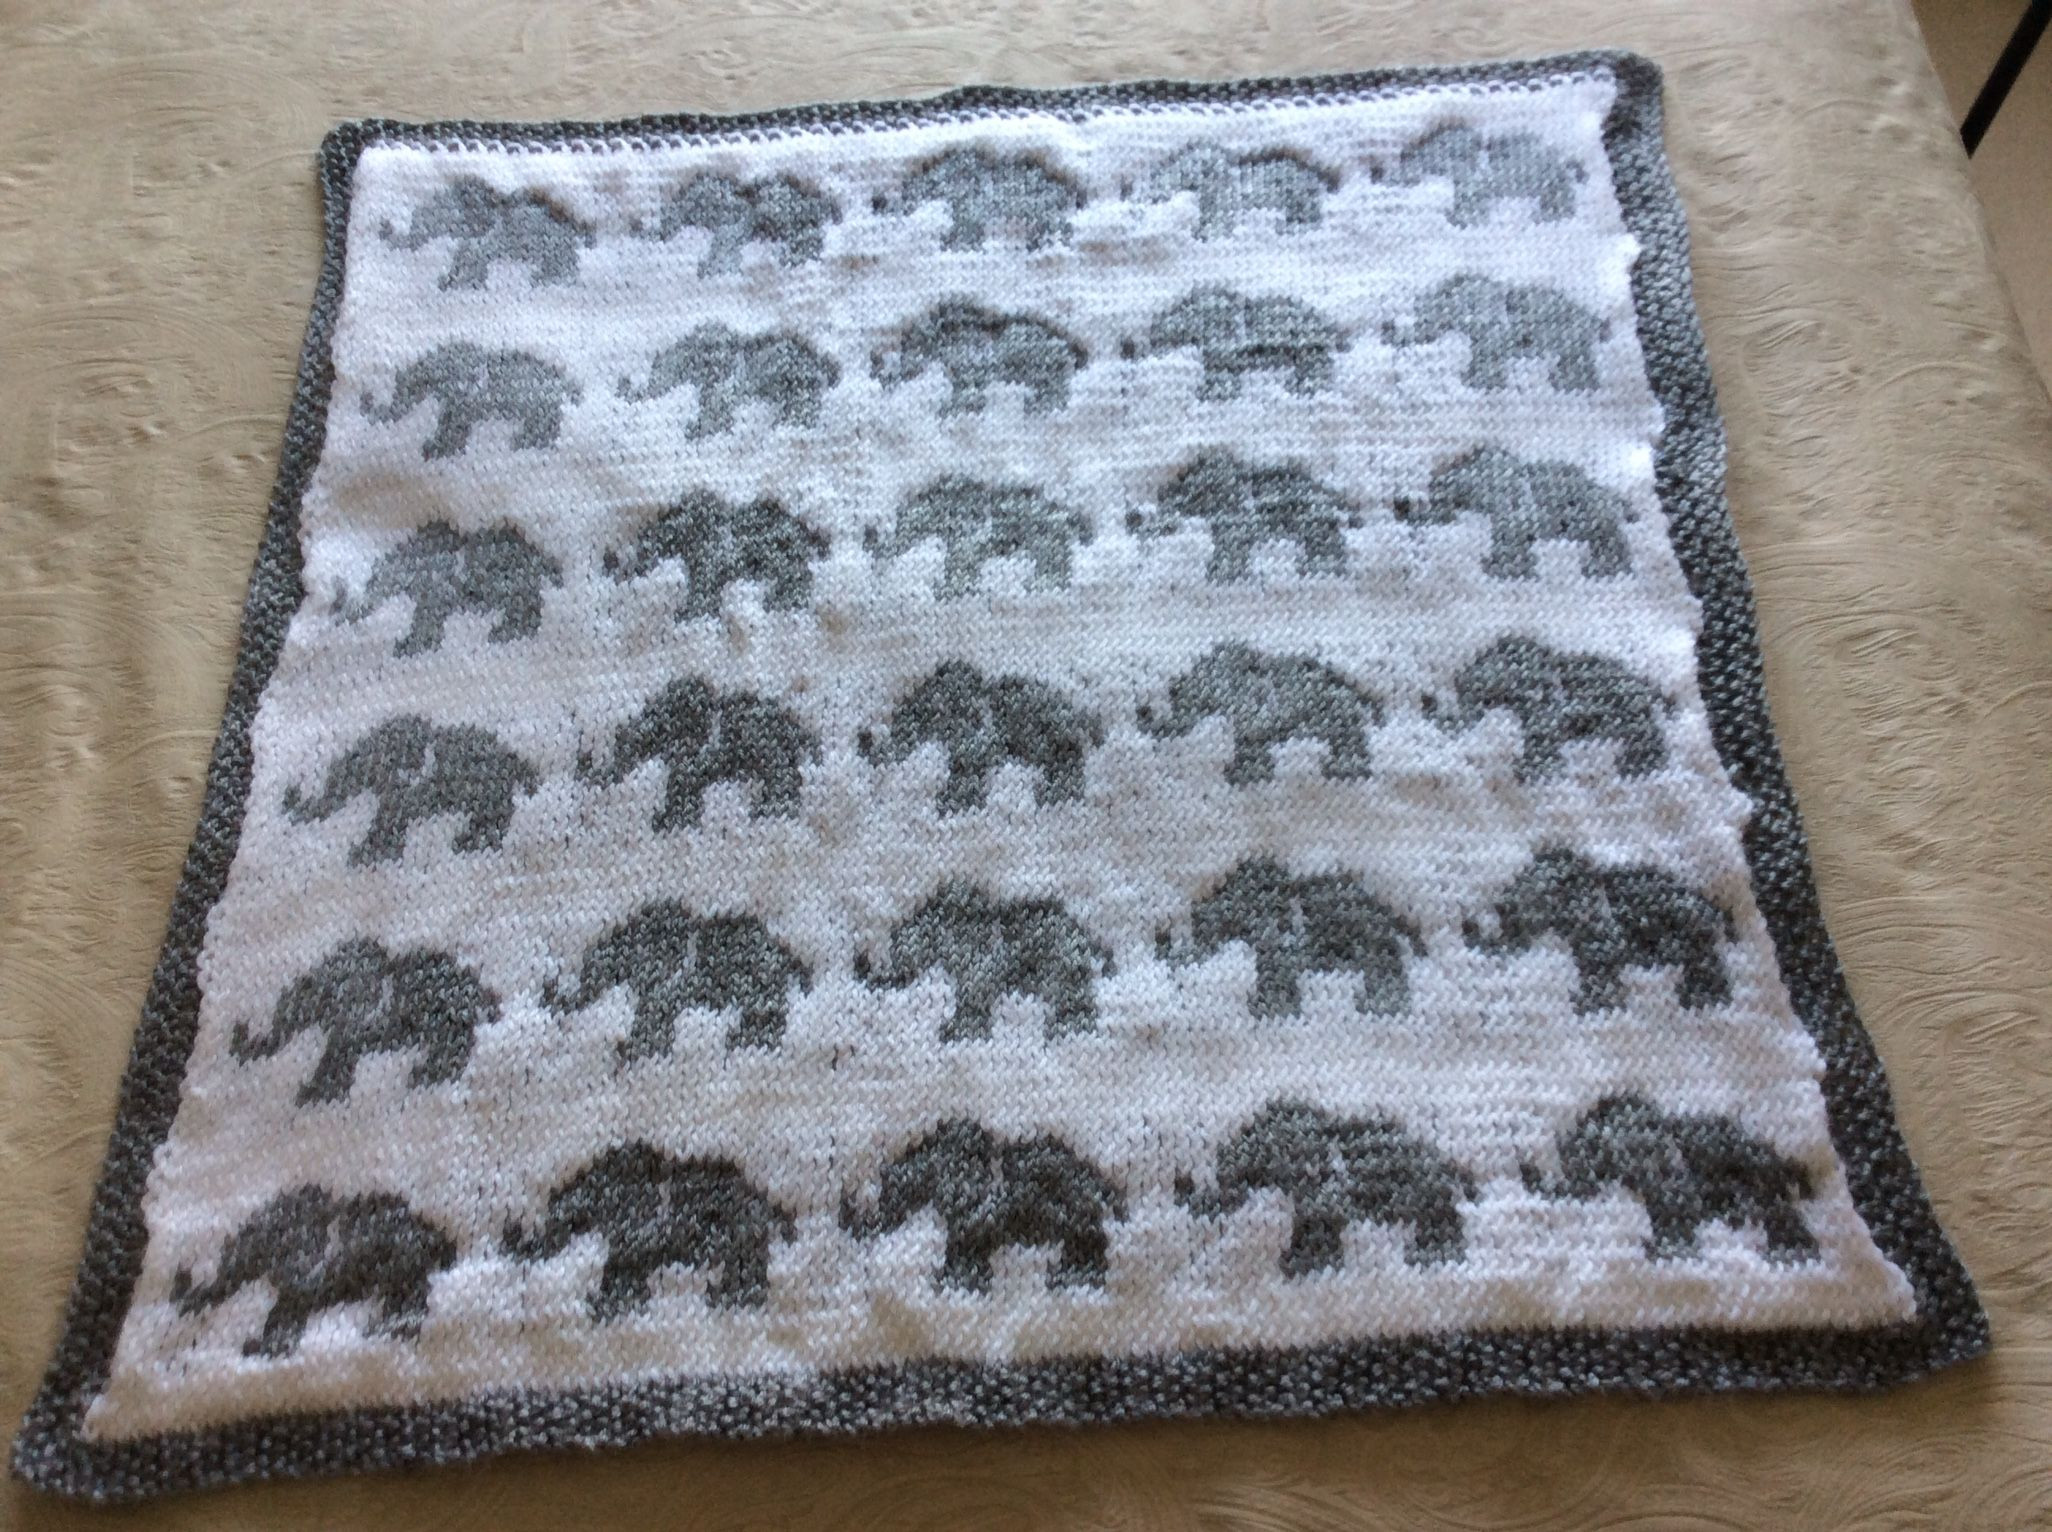 Crochet Elephant Blanket Fresh Elephant Baby Blanket Inspired by Sheep Blanket but Of Awesome 44 Ideas Crochet Elephant Blanket